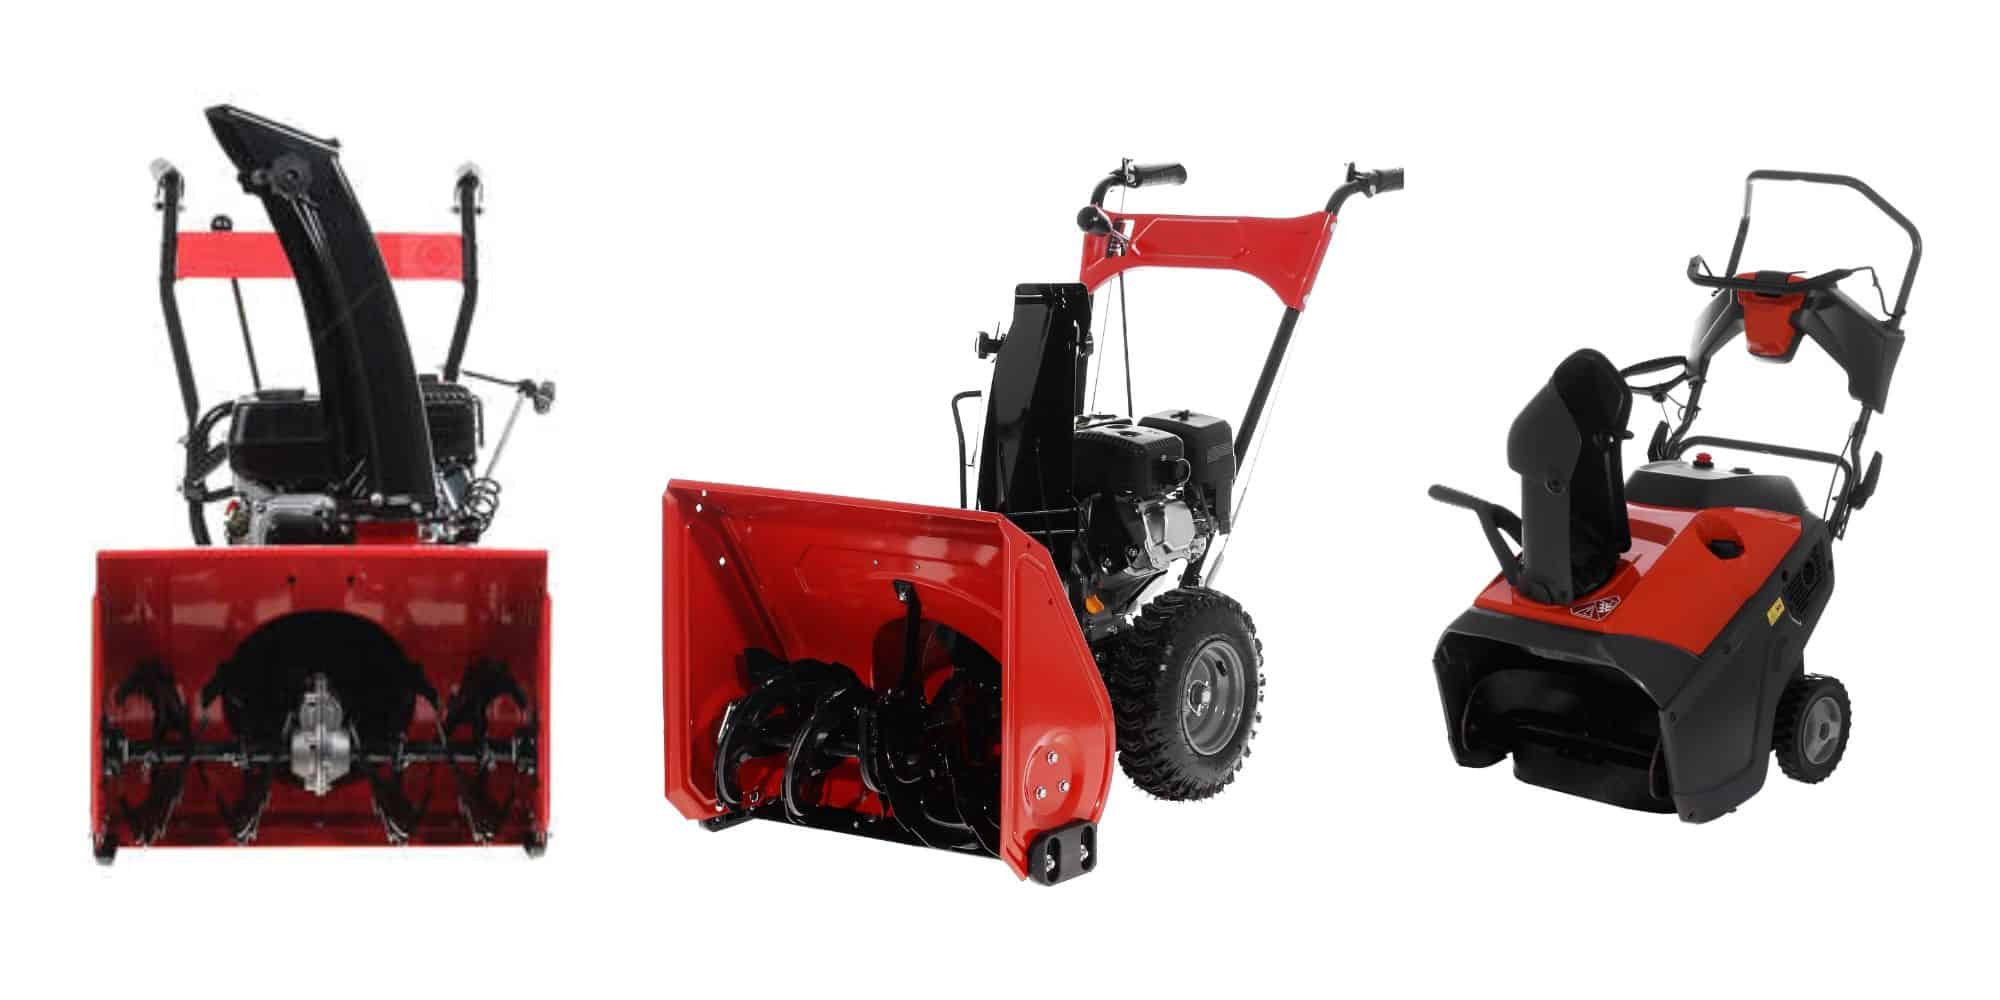 Best snow blower for wet snow in your backyard: 3-satde snow bloser, 2-stage snow blower, single-stage snow blower